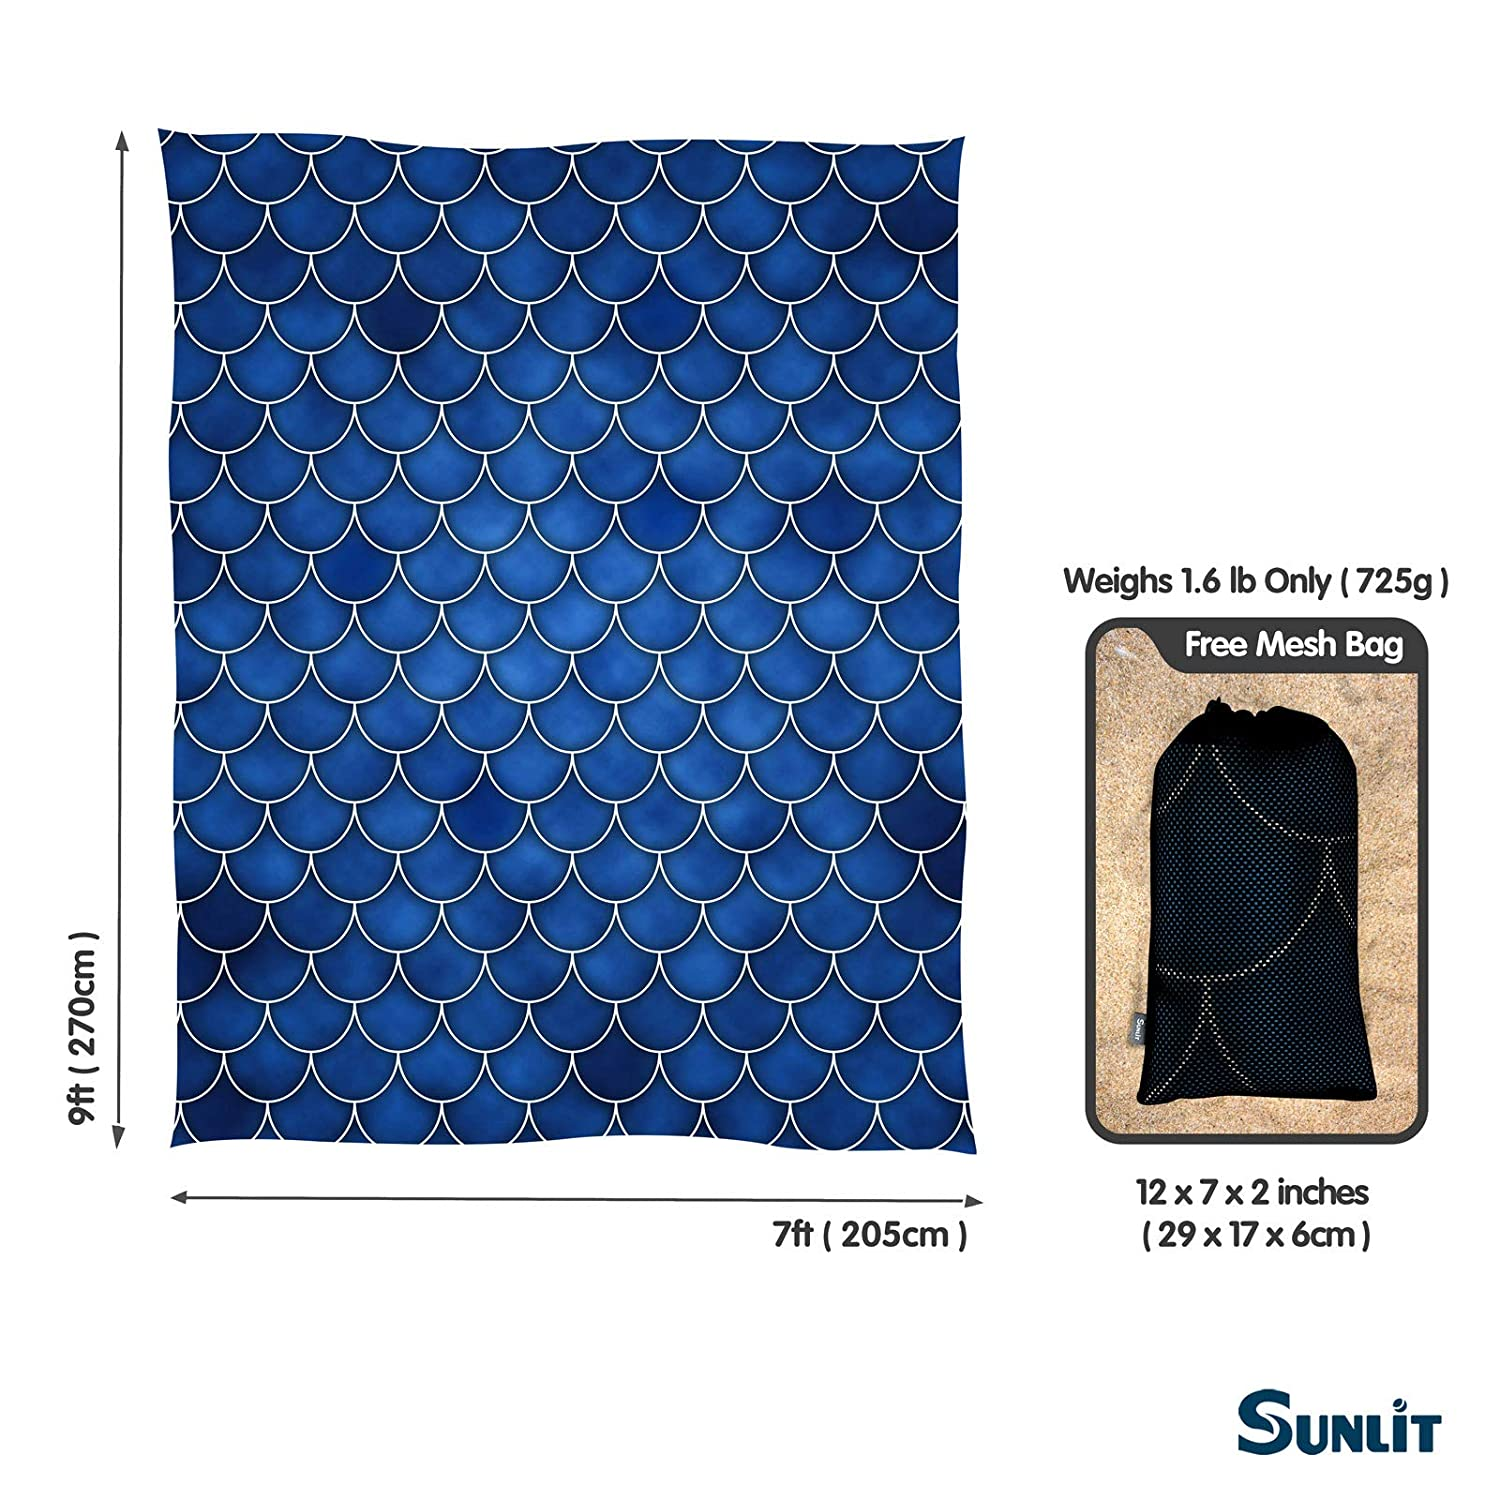 Camping and Outdoor Music Festival Travel Sunlit Silky Soft Sandfree Beach Blanket Sand Proof Mat with Corner Pockets and Mesh Bag 7 x 9 for Beach Party